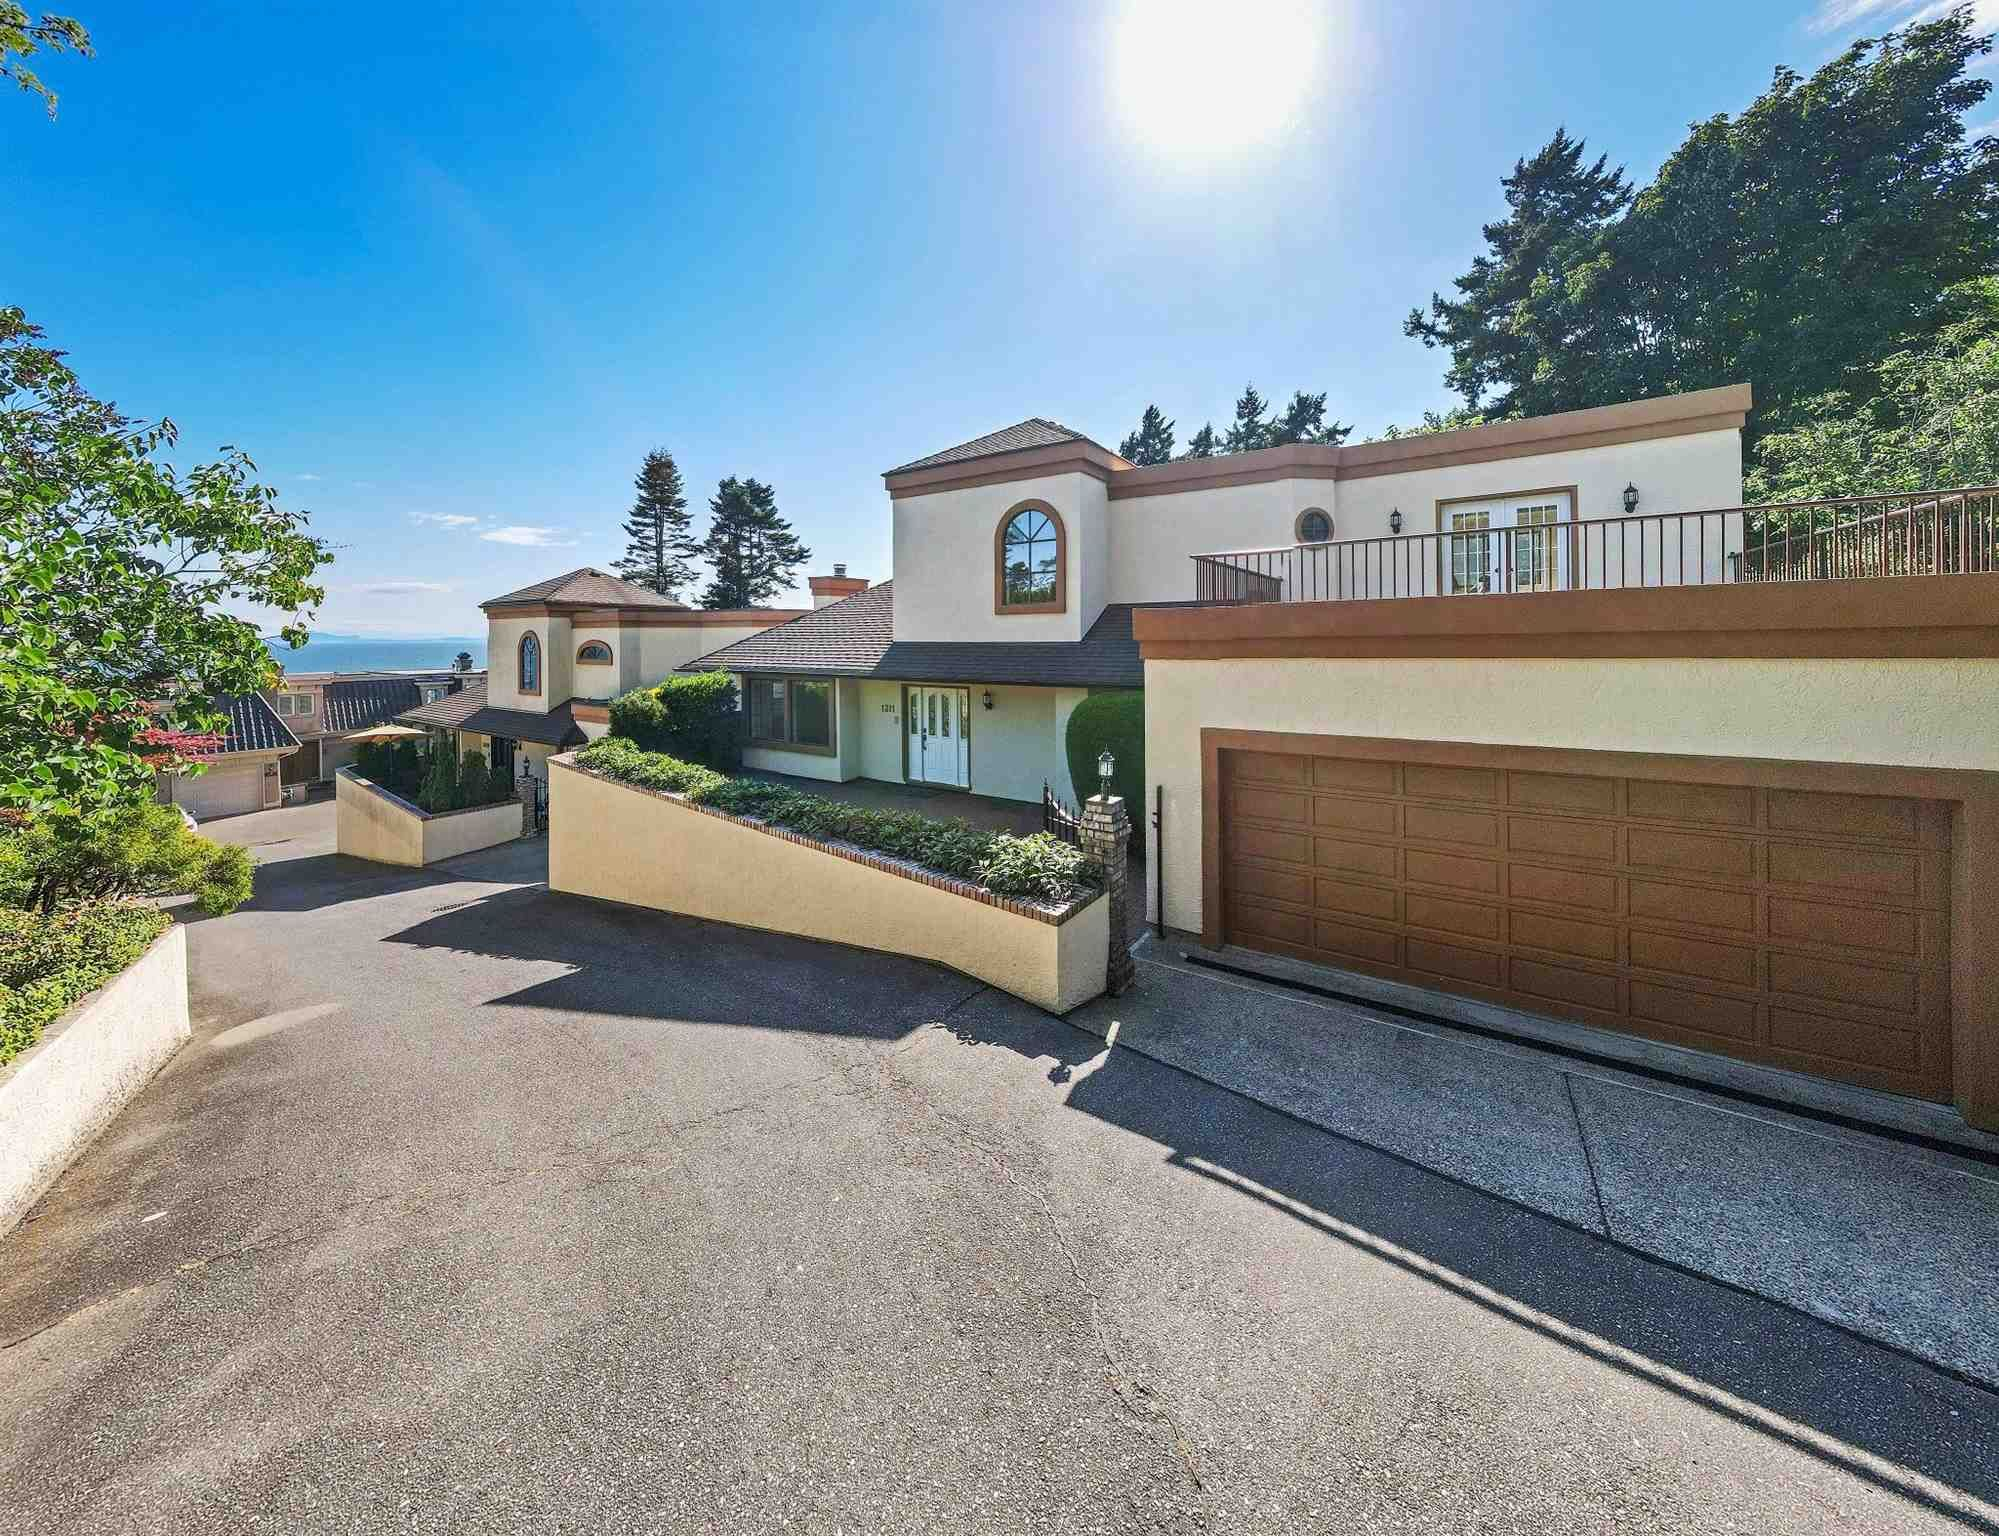 """Main Photo: 1311 133A Street in Surrey: Crescent Bch Ocean Pk. House for sale in """"Seacliffe Manor"""" (South Surrey White Rock)  : MLS®# R2605149"""